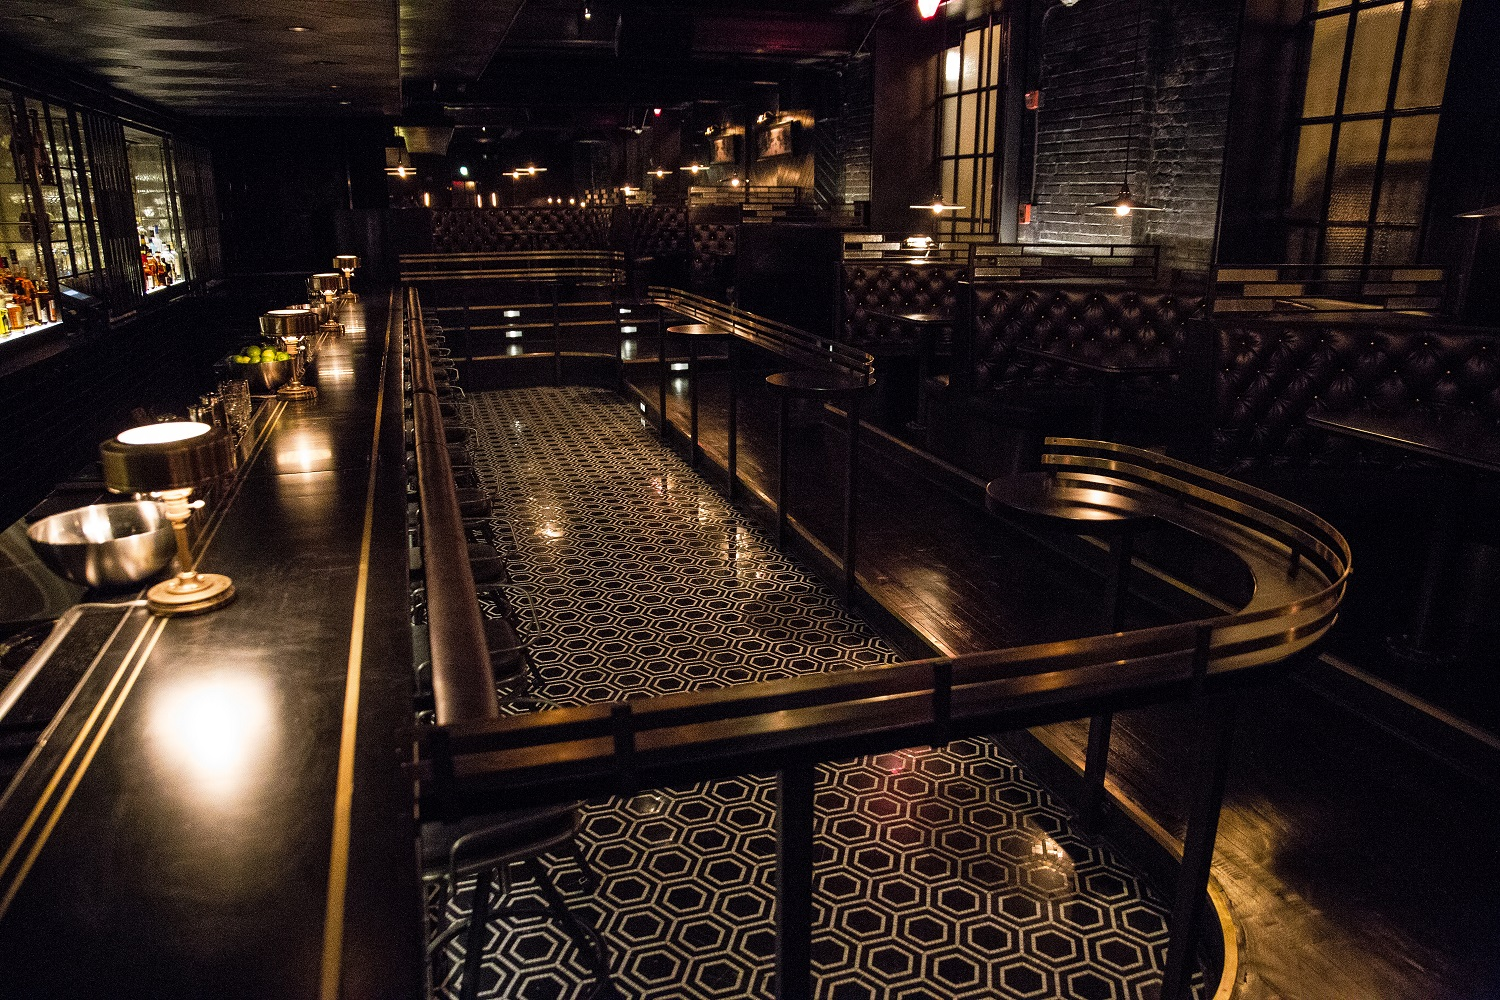 studio-saint-bars-and-restaurants-denson-washington-dc-5